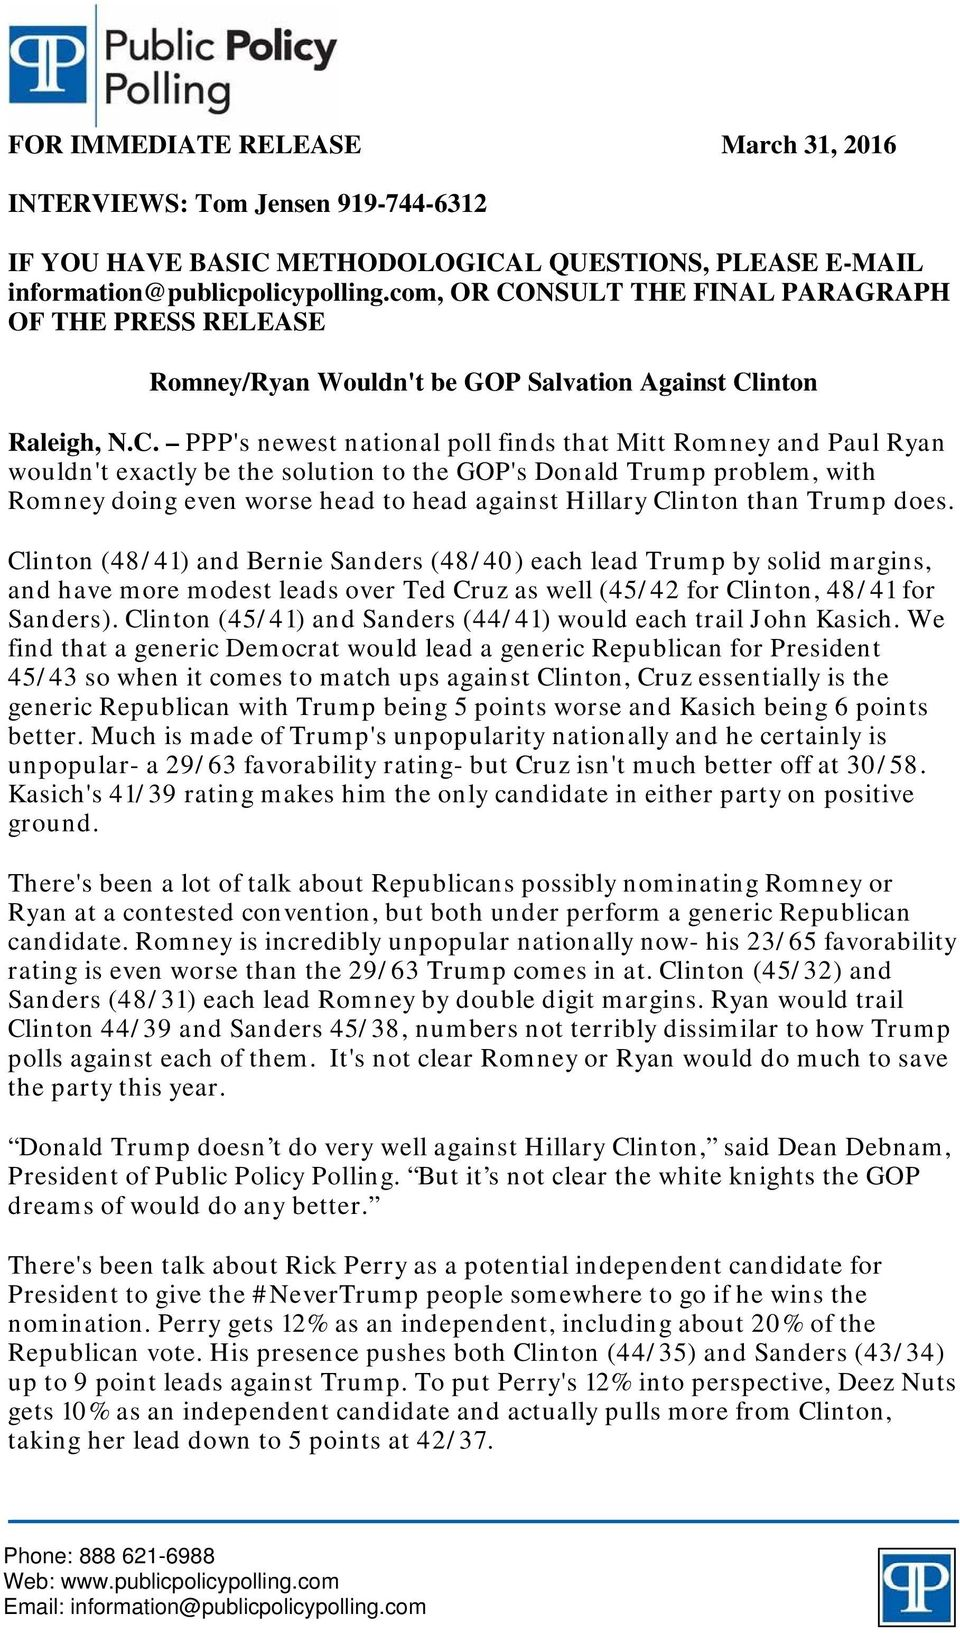 NSULT THE FINAL PARAGRAPH OF THE PRESS RELEASE /Ryan Wouldn't be GOP Salvation Against Cl